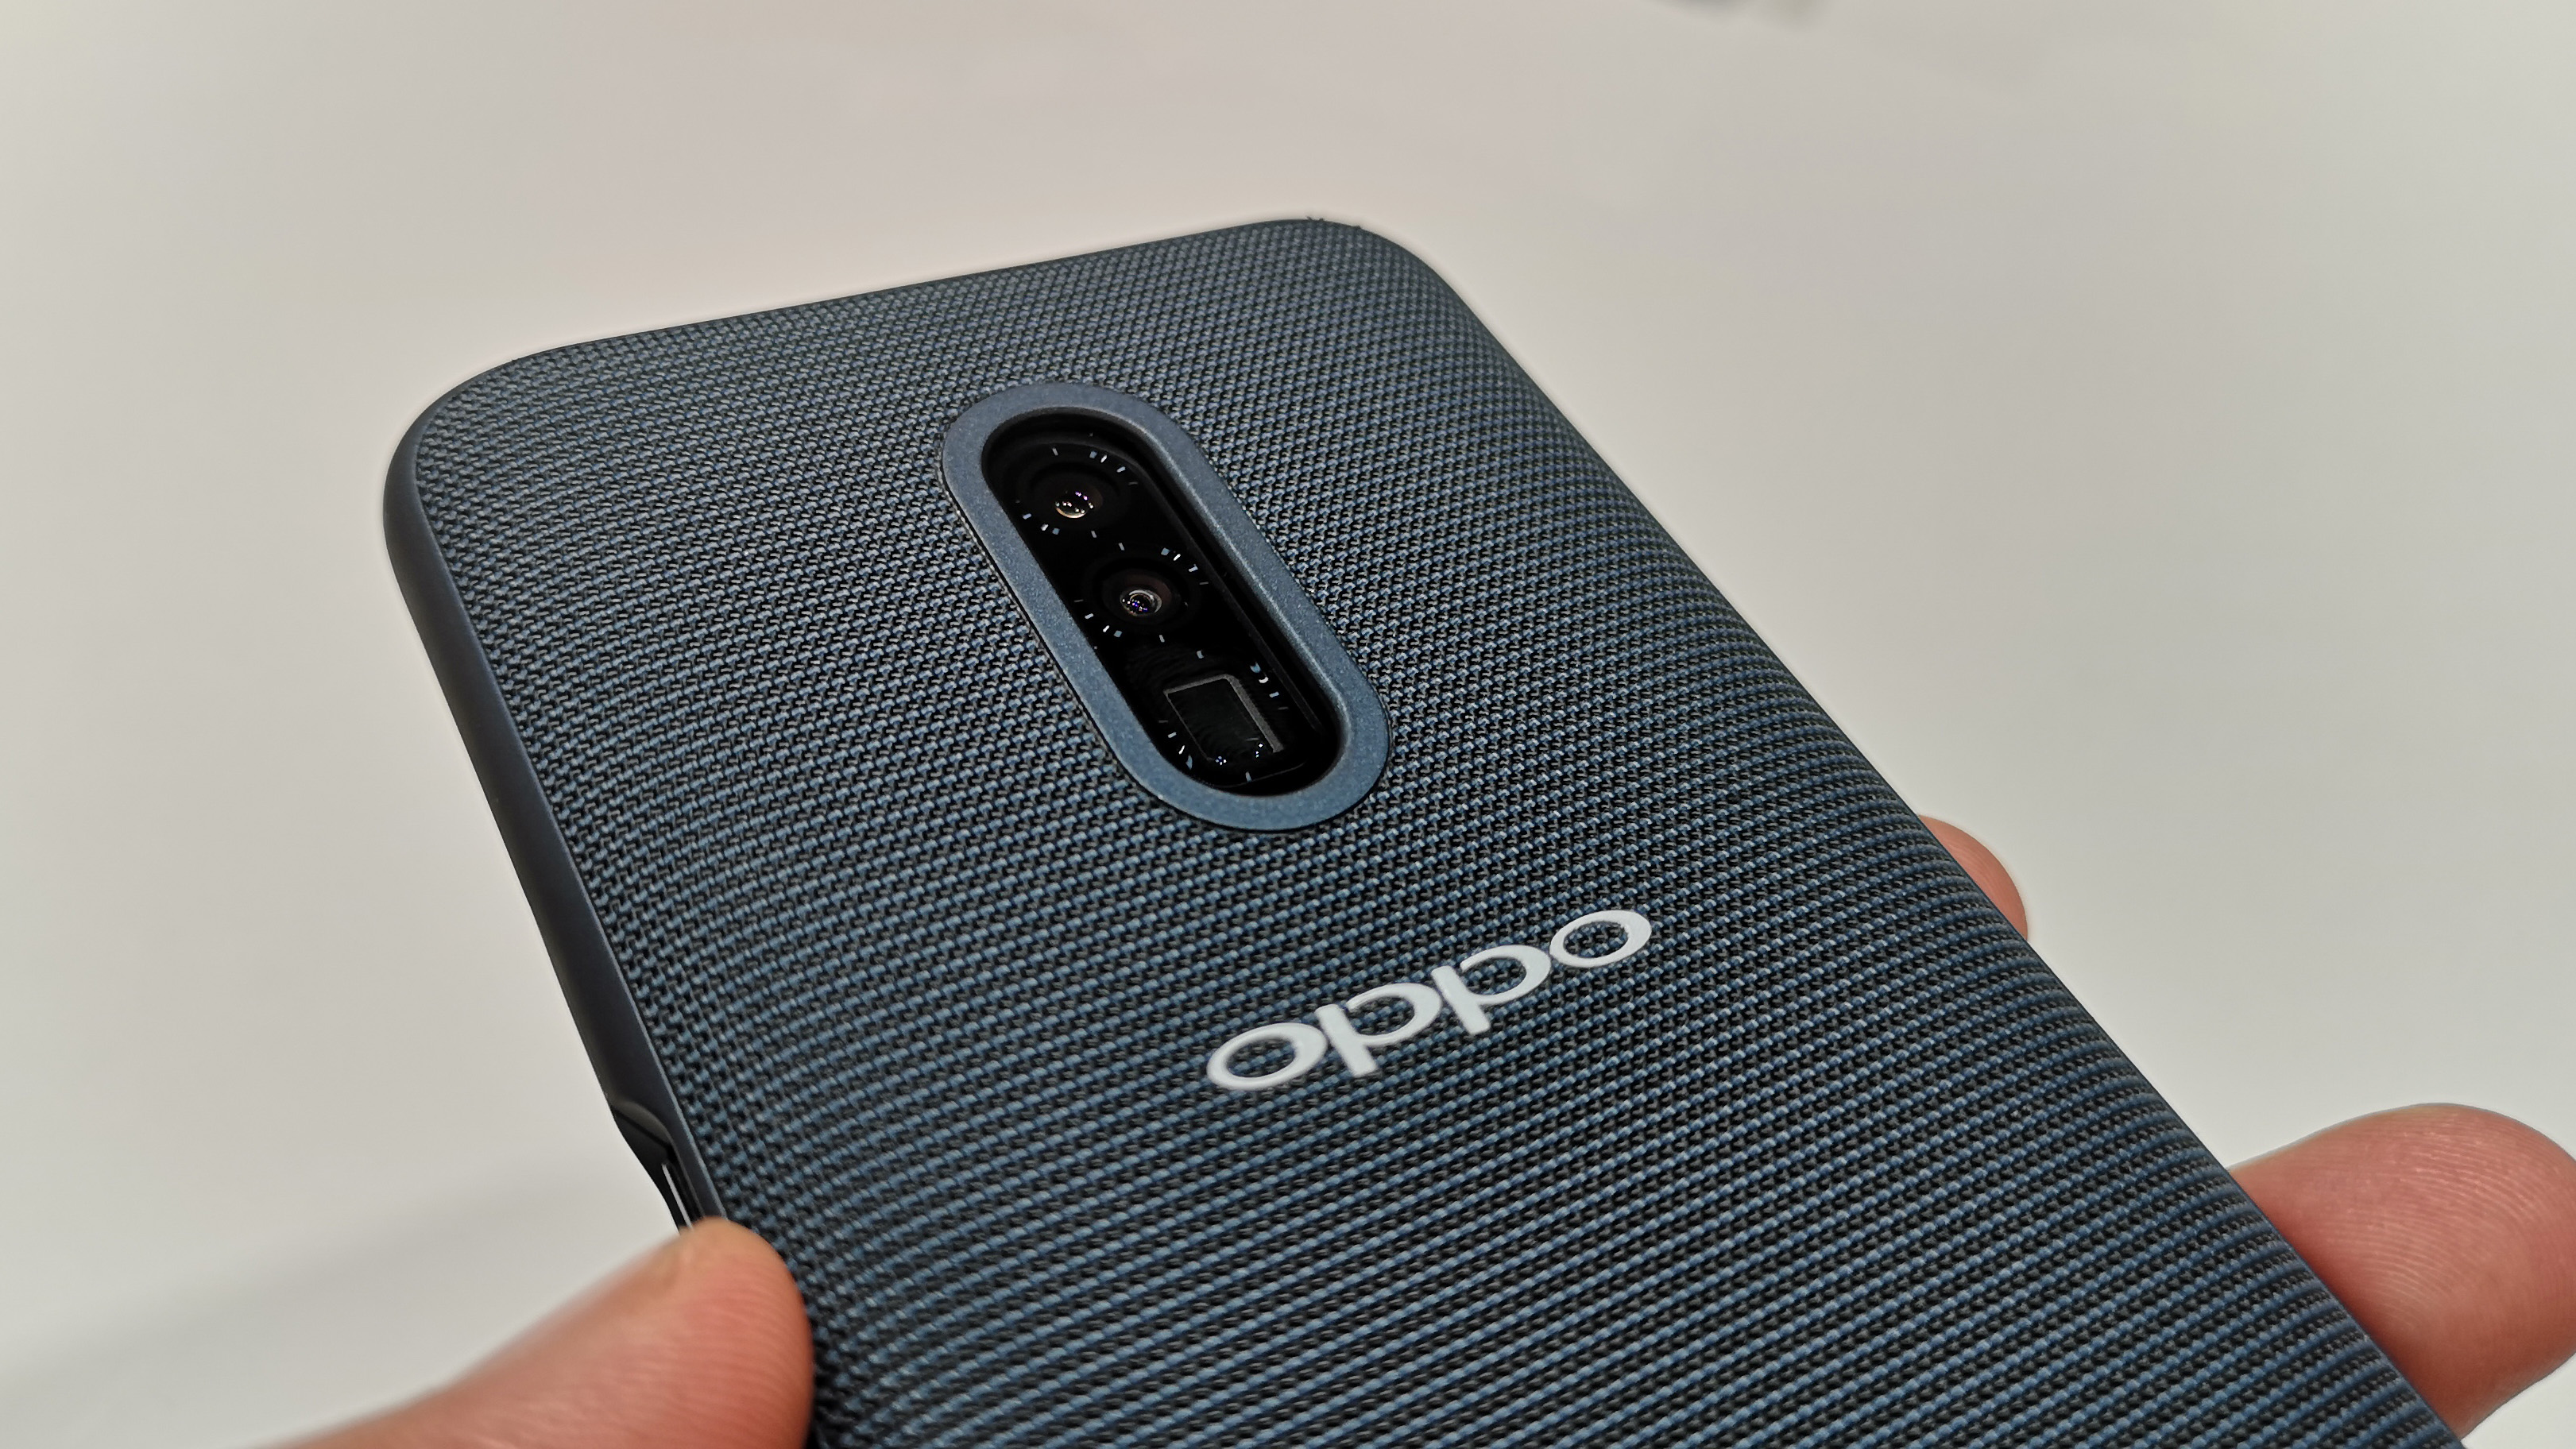 Oppo's new 10x lossless zoom technology lets you wave goodbye to blurry photos